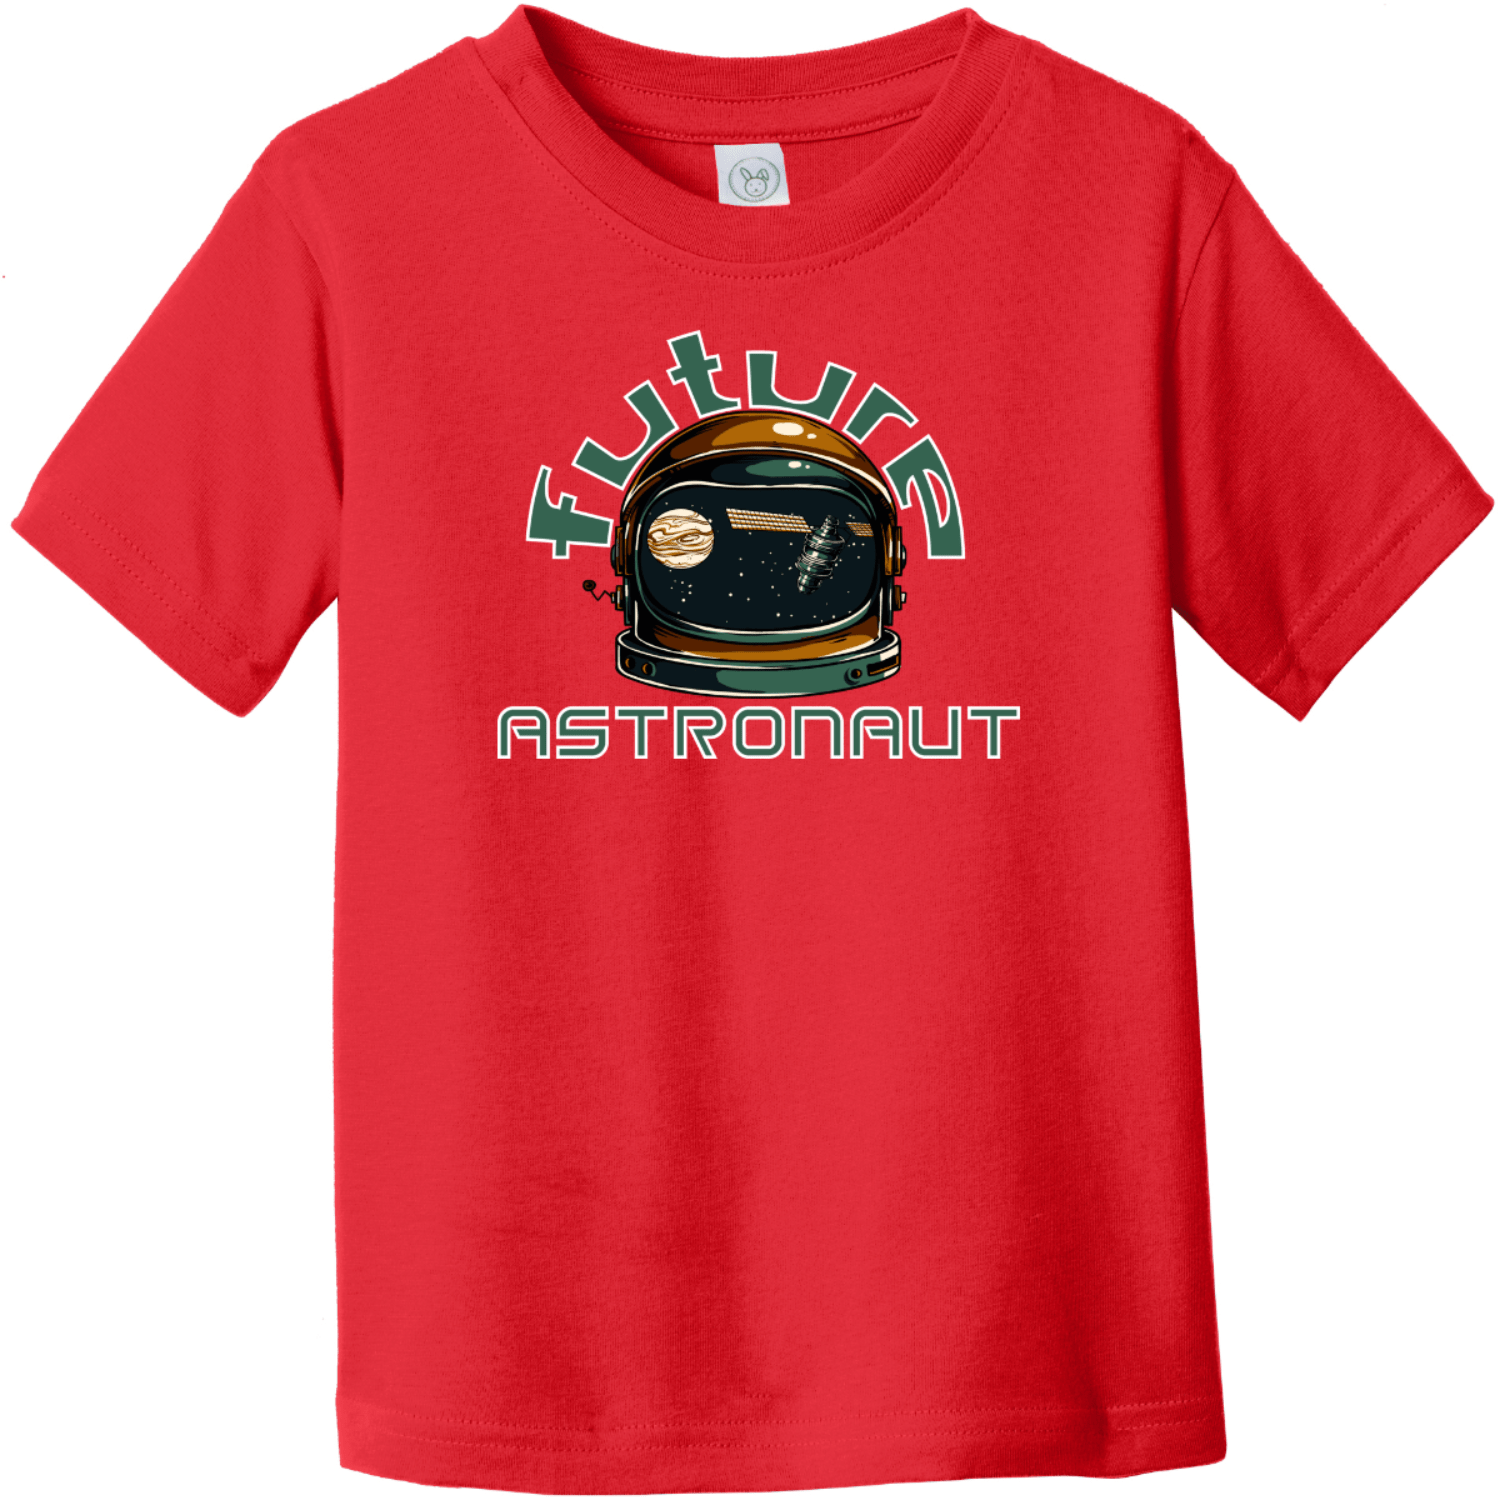 Future Astronaut Toddler T-Shirt Red Rabbit Skins Toddler Fine Jersey Tee RS3321